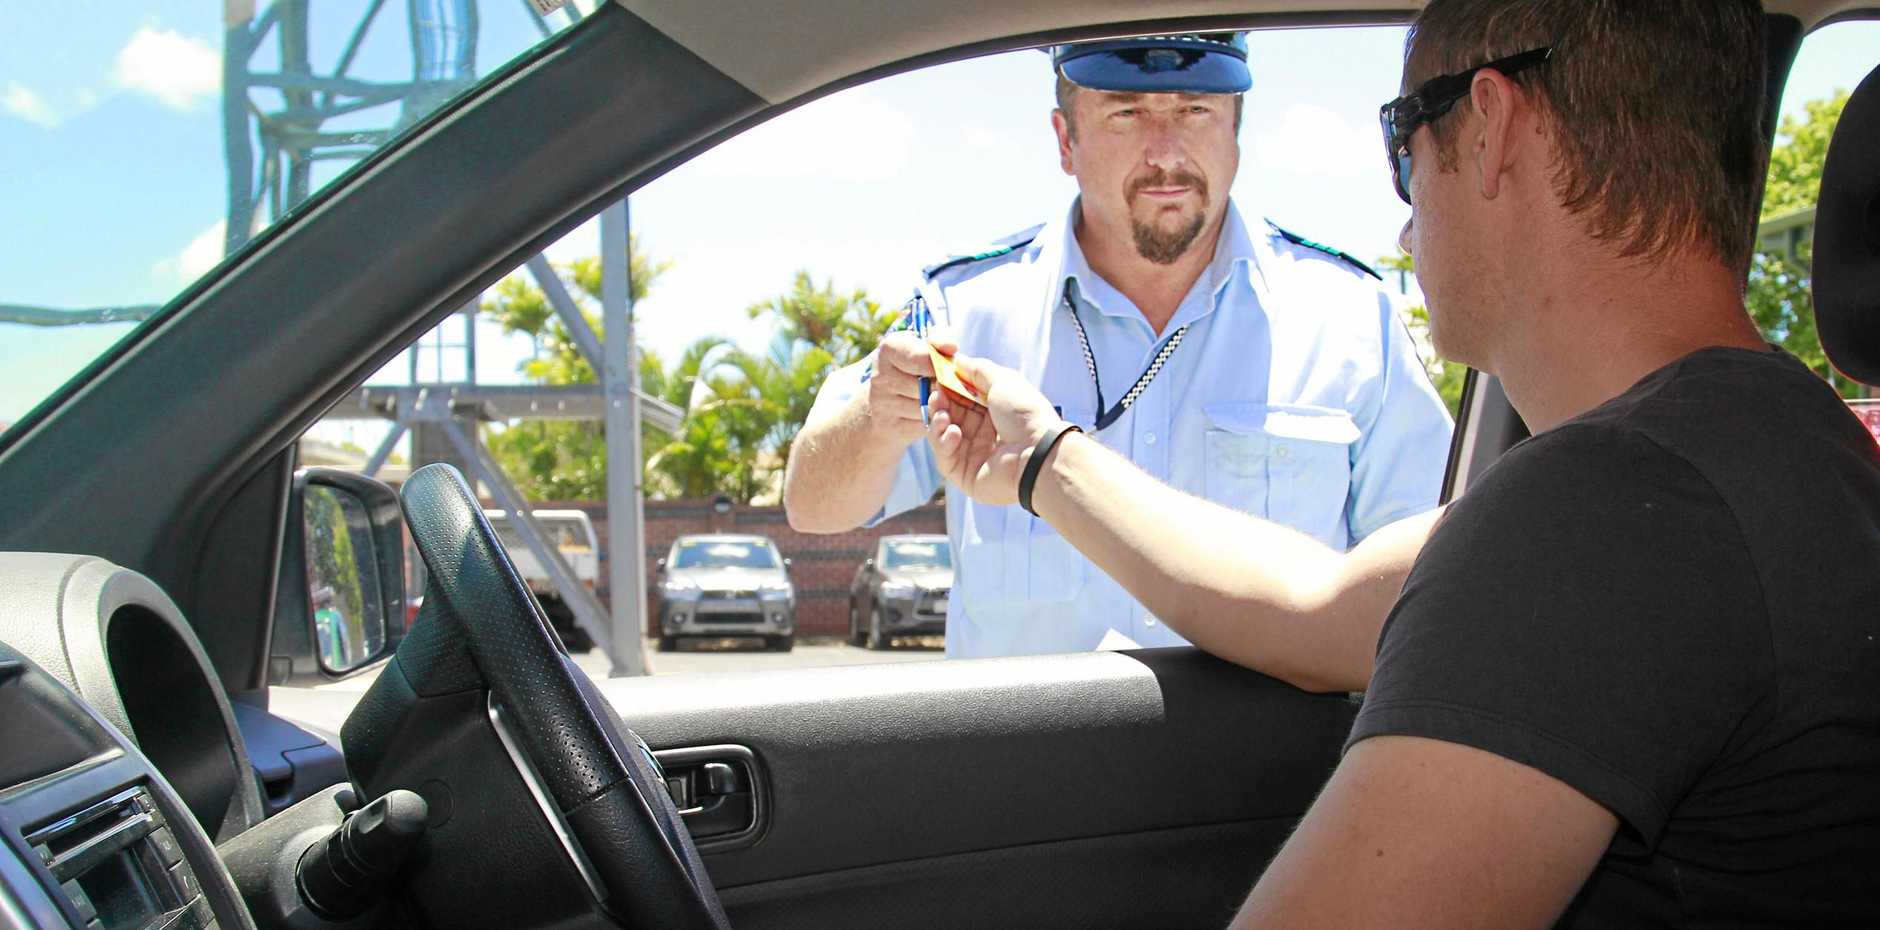 An unknown, unpaid fine was behind man's work licence fail (image used is a stock photo).